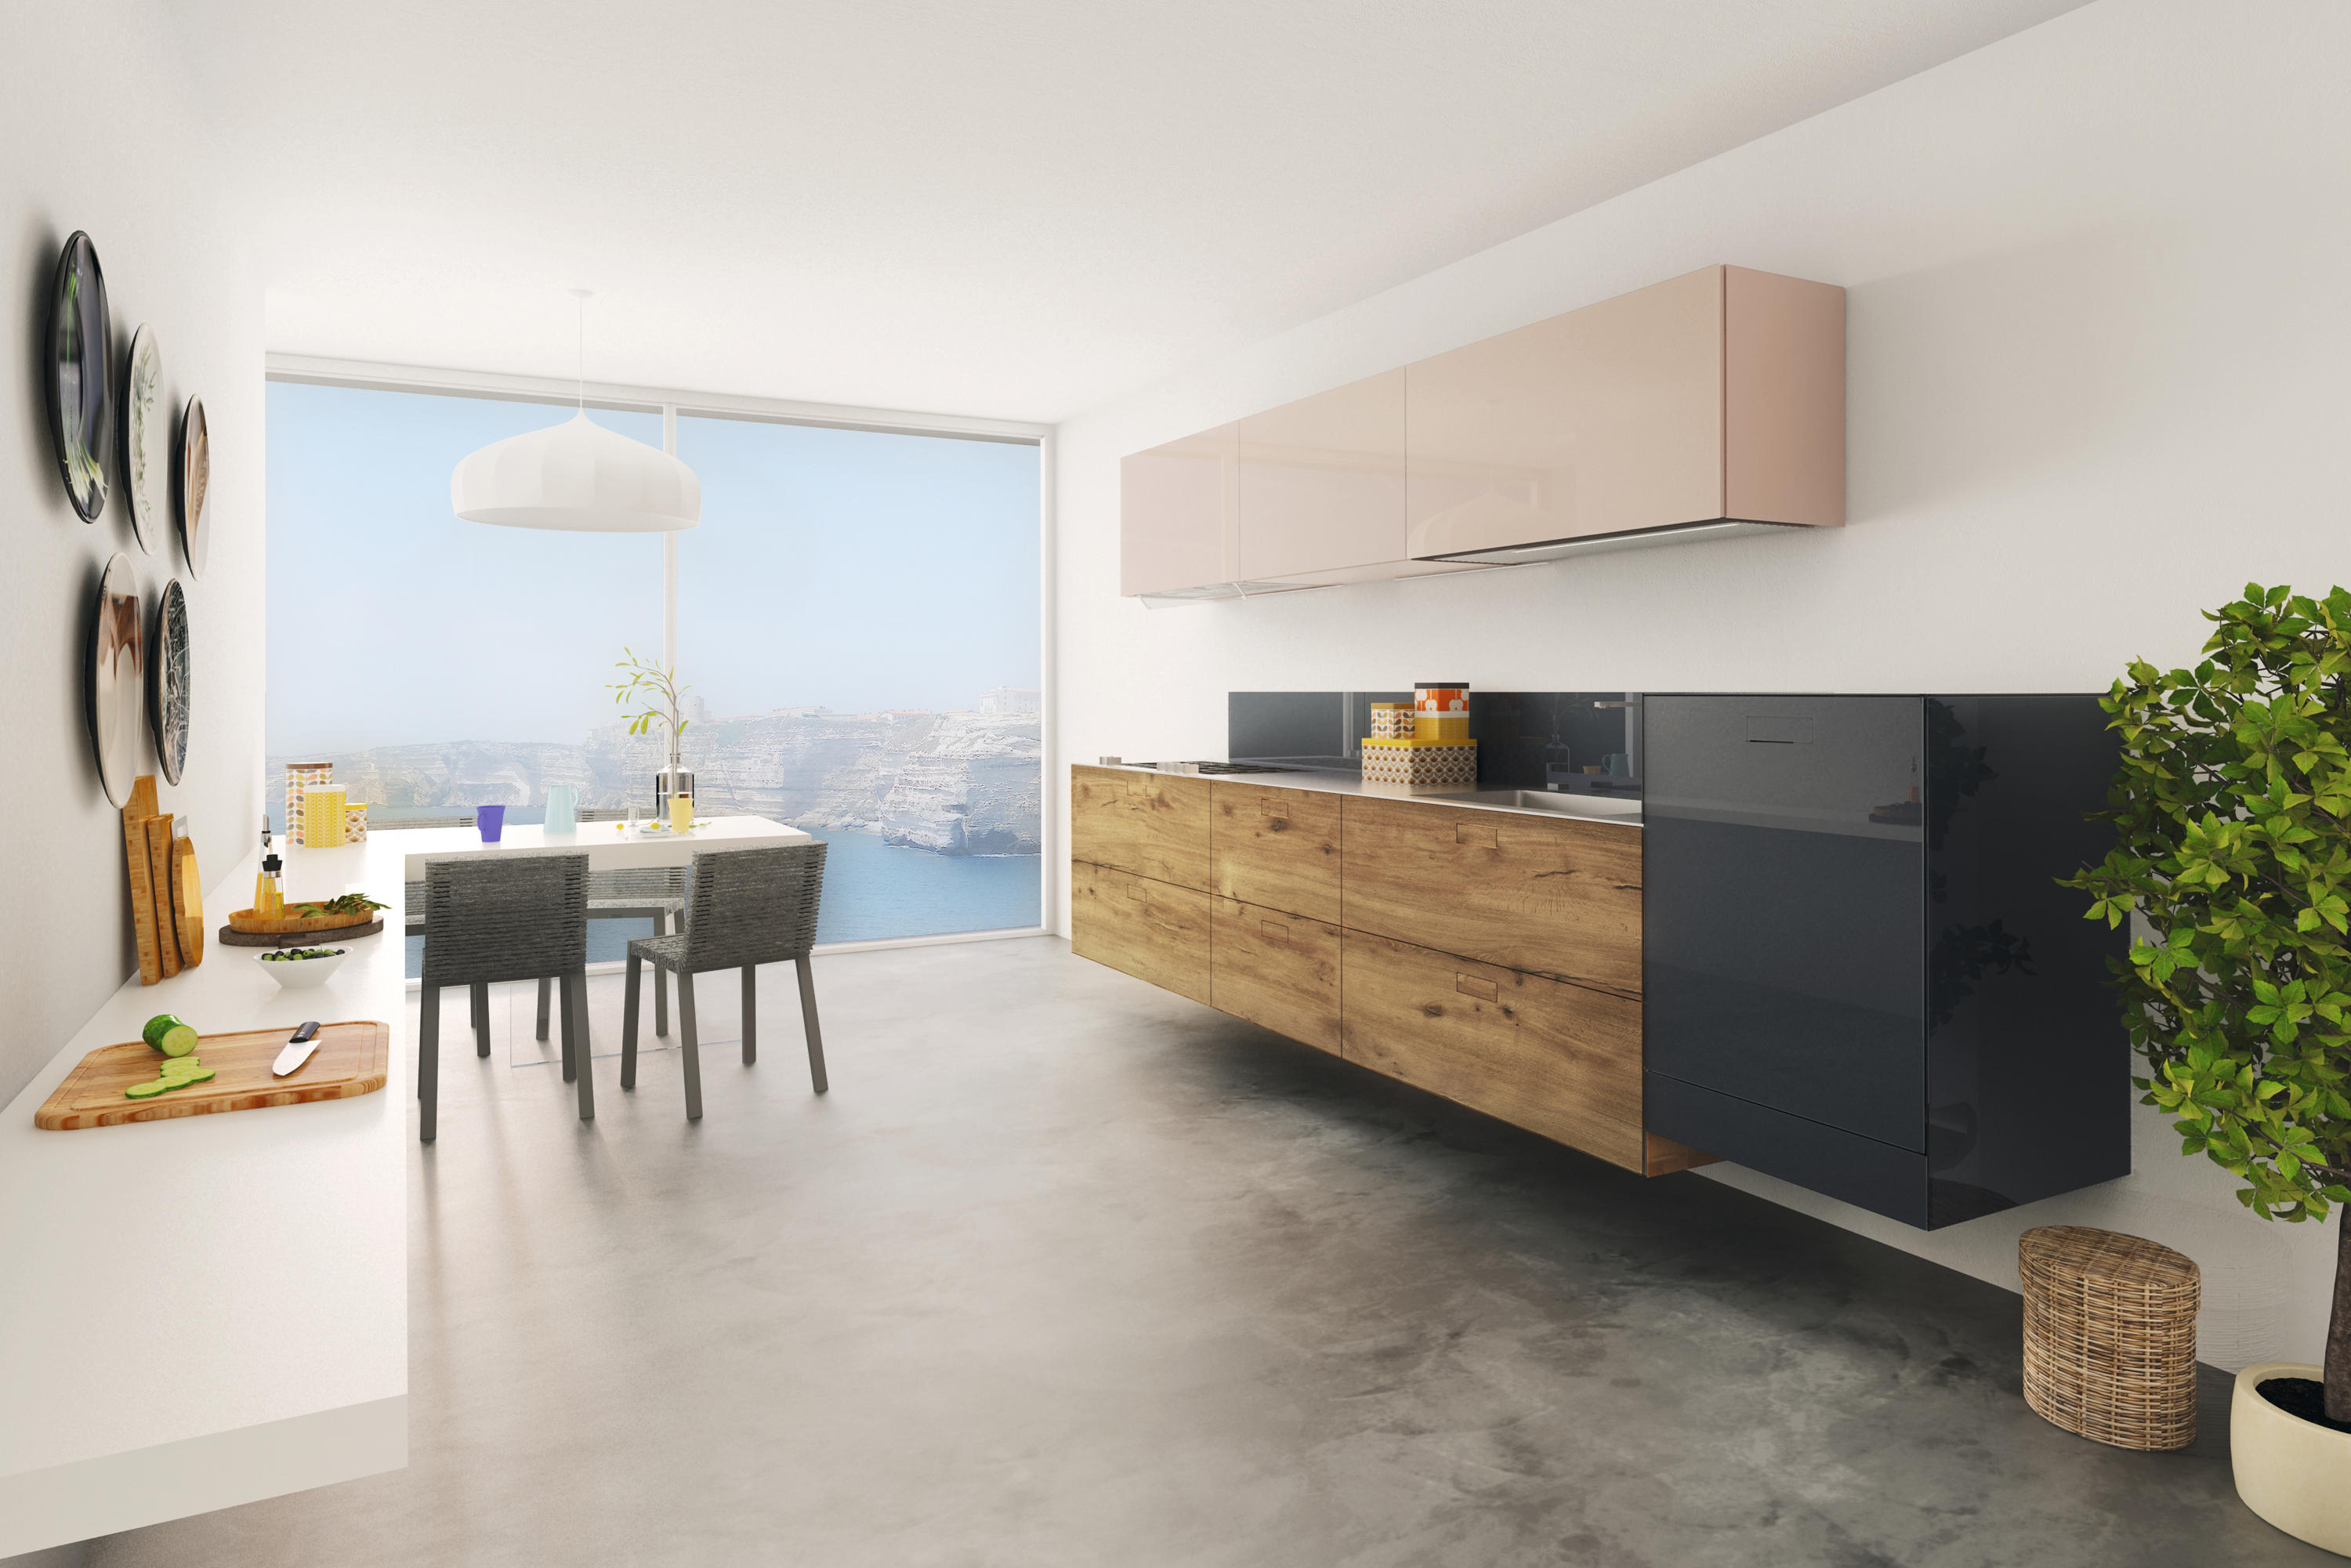 36E8_KITCHEN_WILDWOOD - Cucine parete LAGO | Architonic